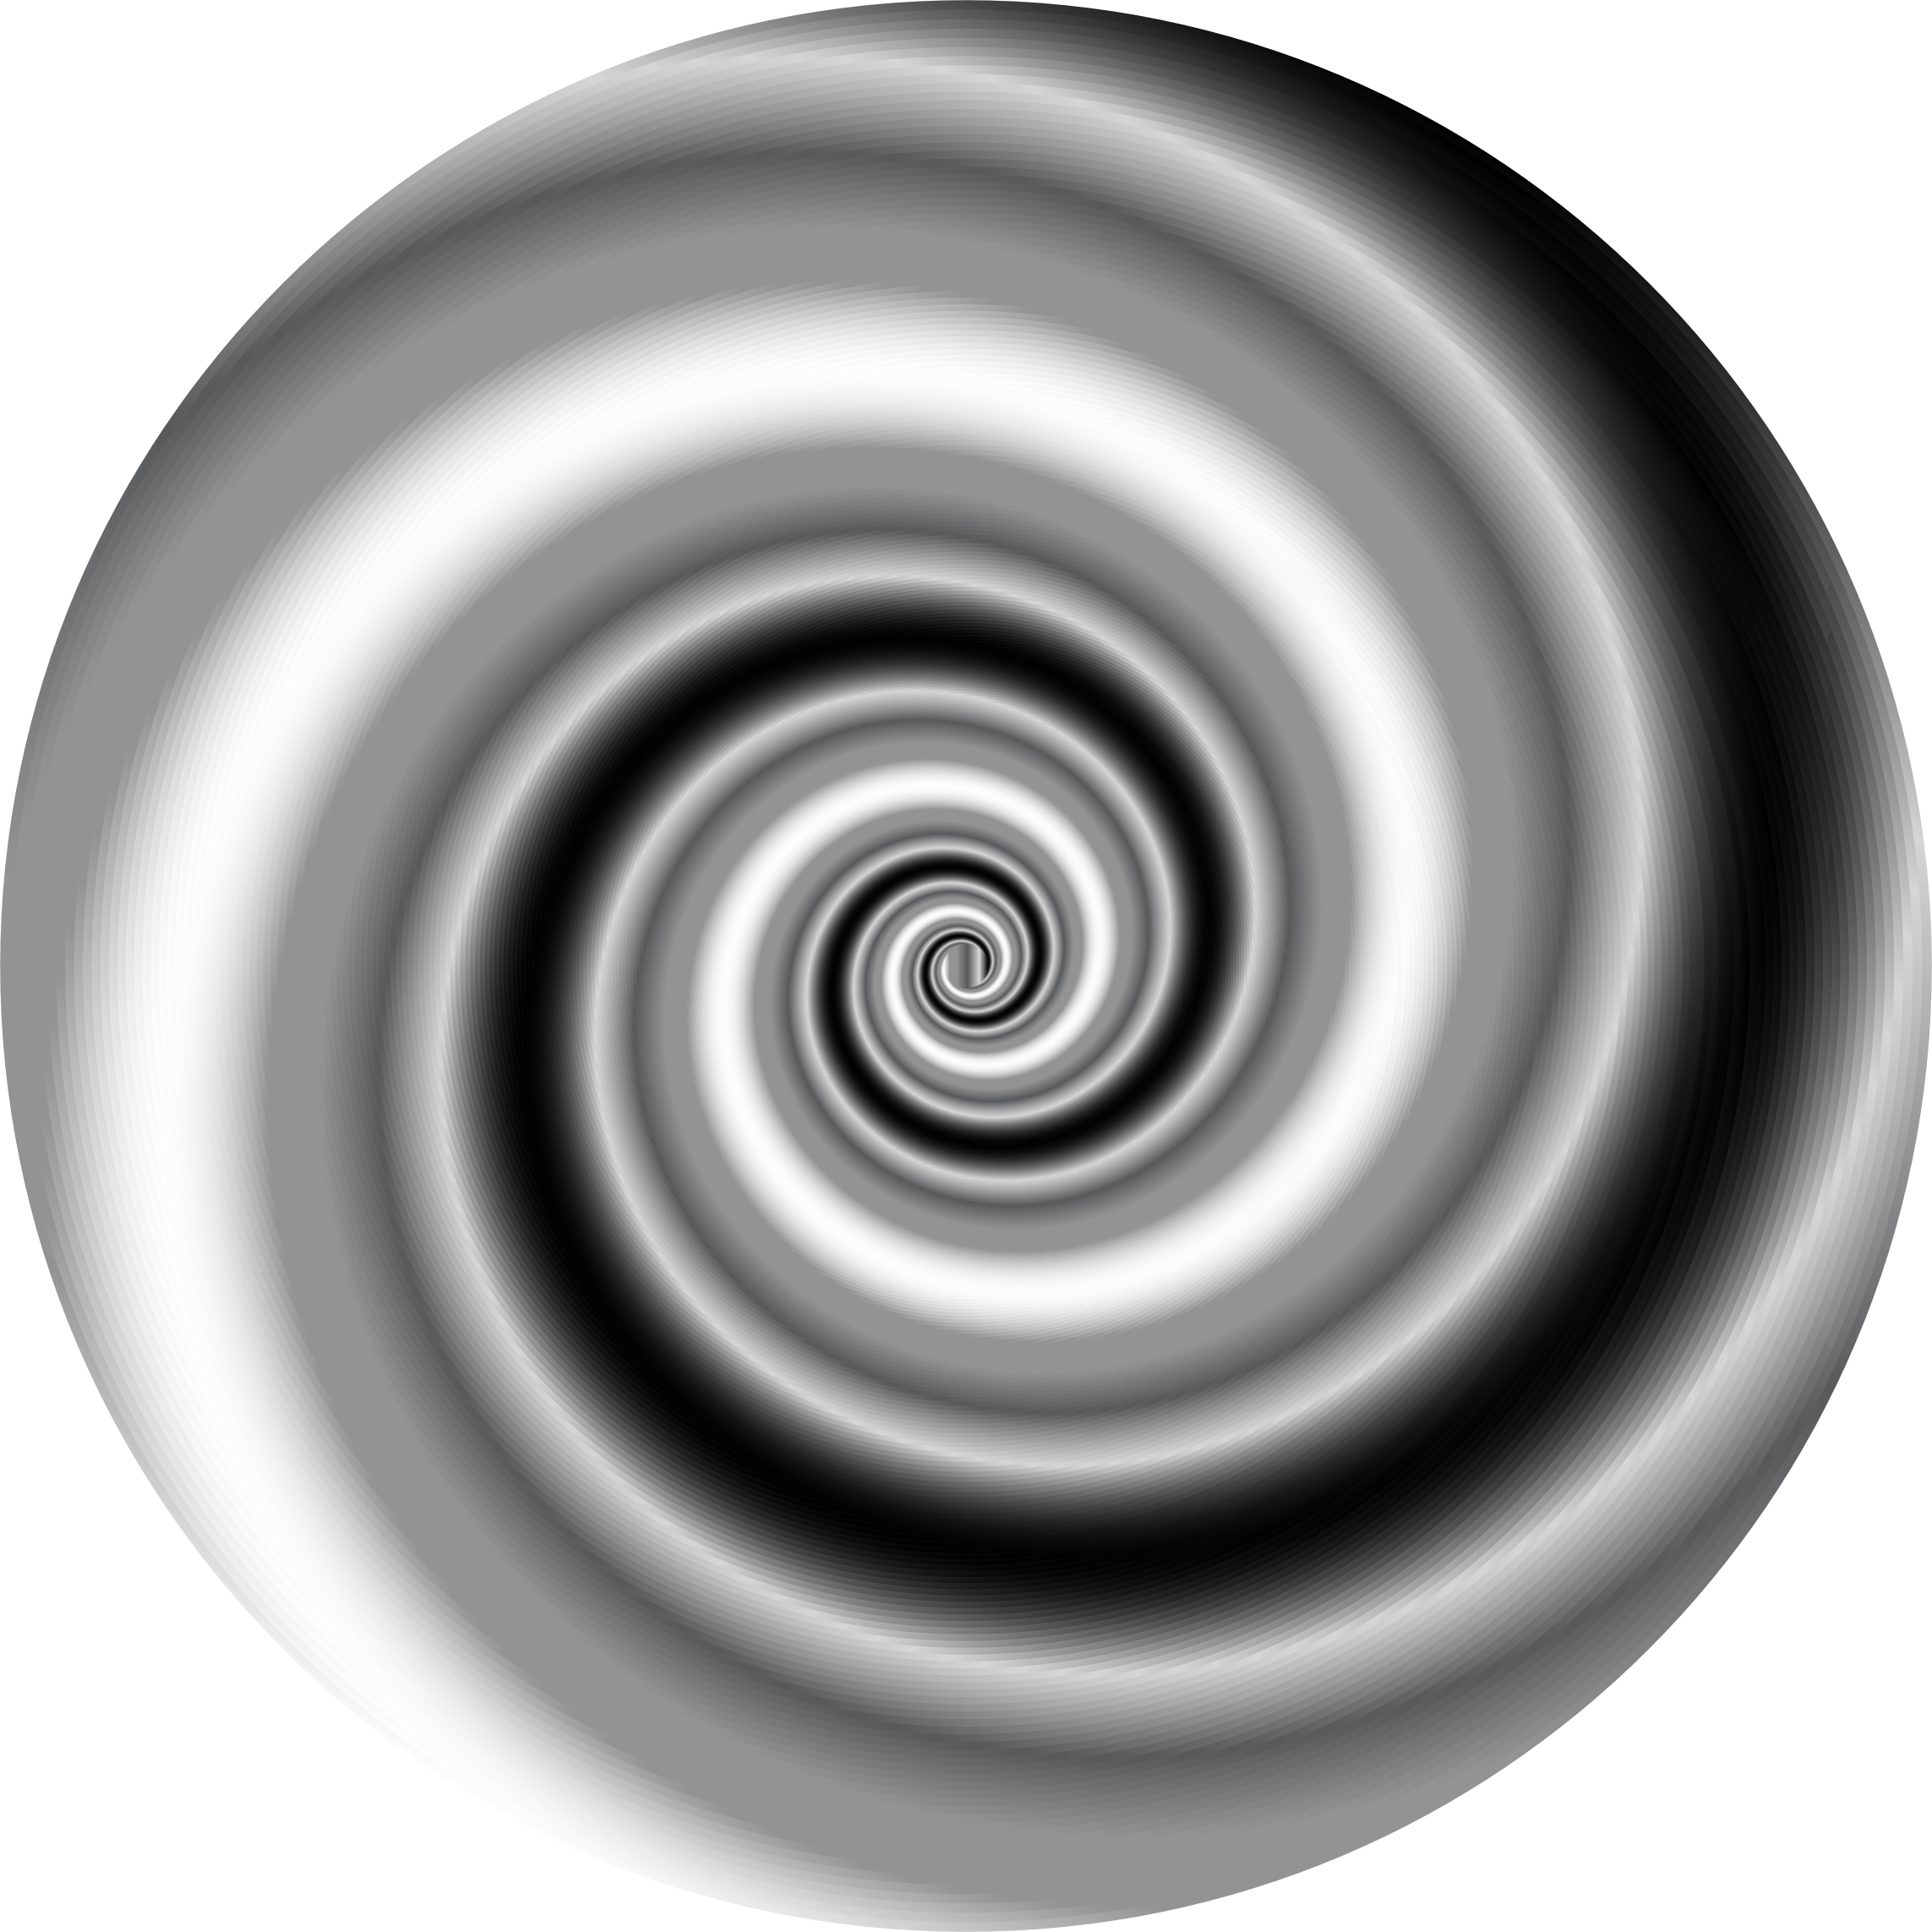 Colorful swirling icons png. Vortex vector black and white jpg library download